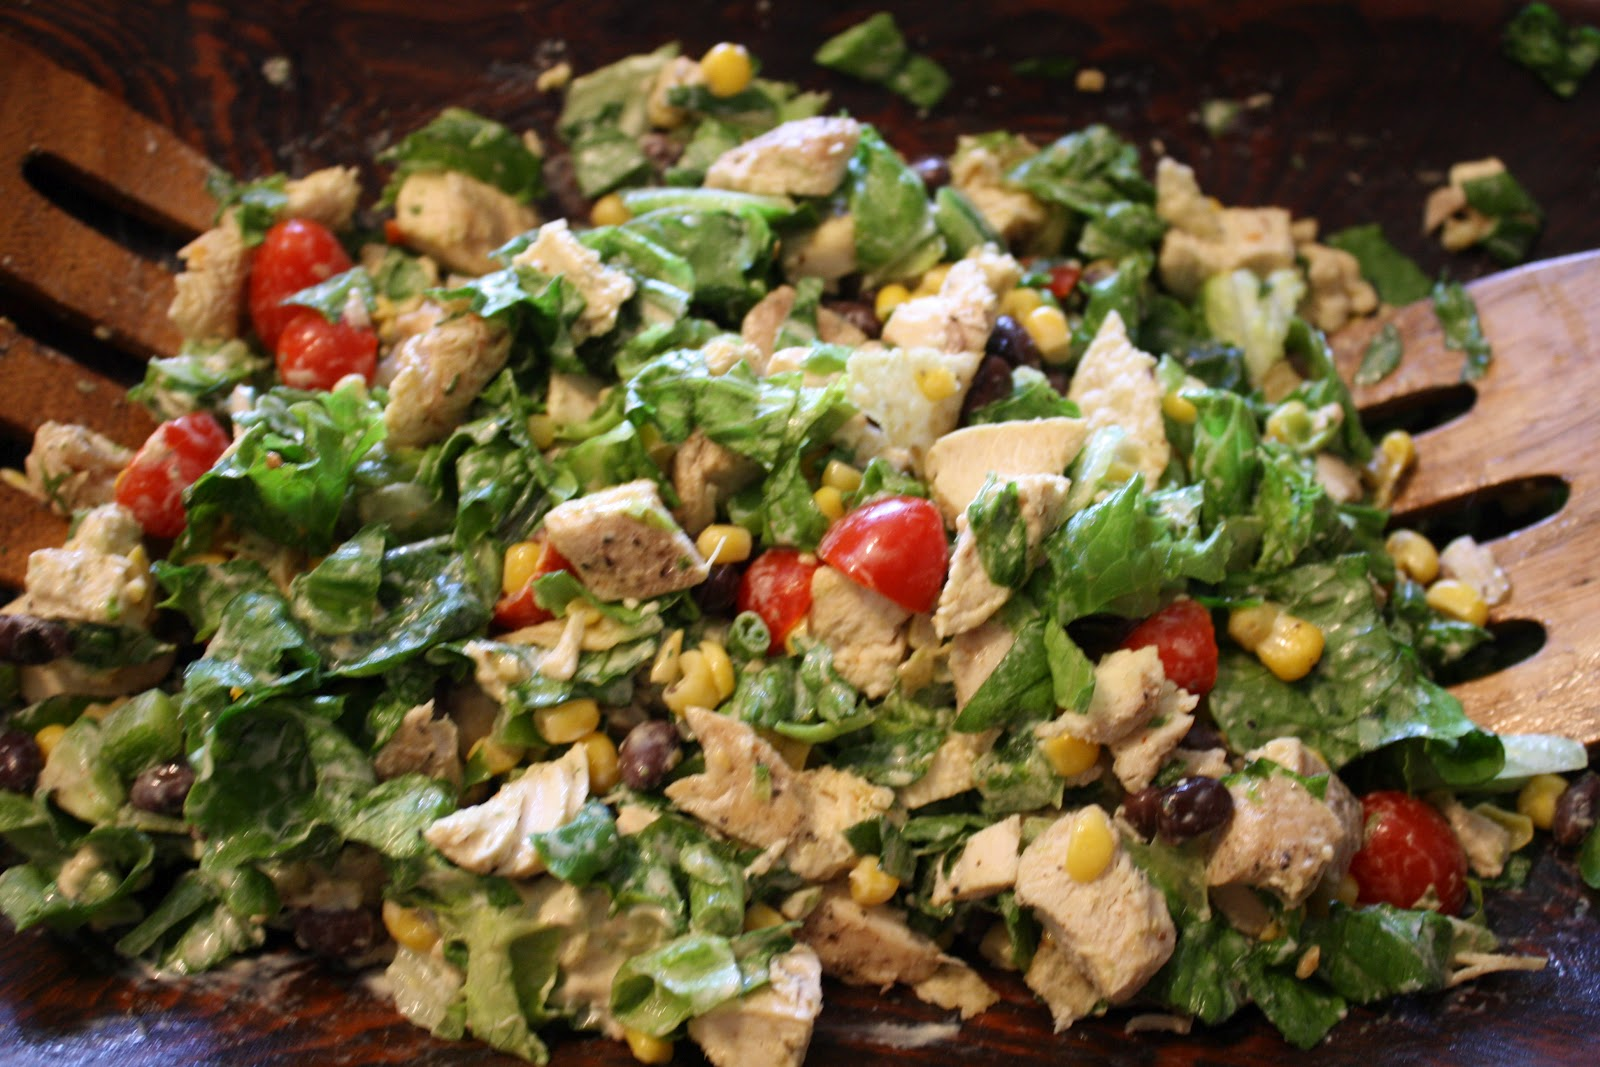 Charming Day: Southwestern Chopped Chicken Salad